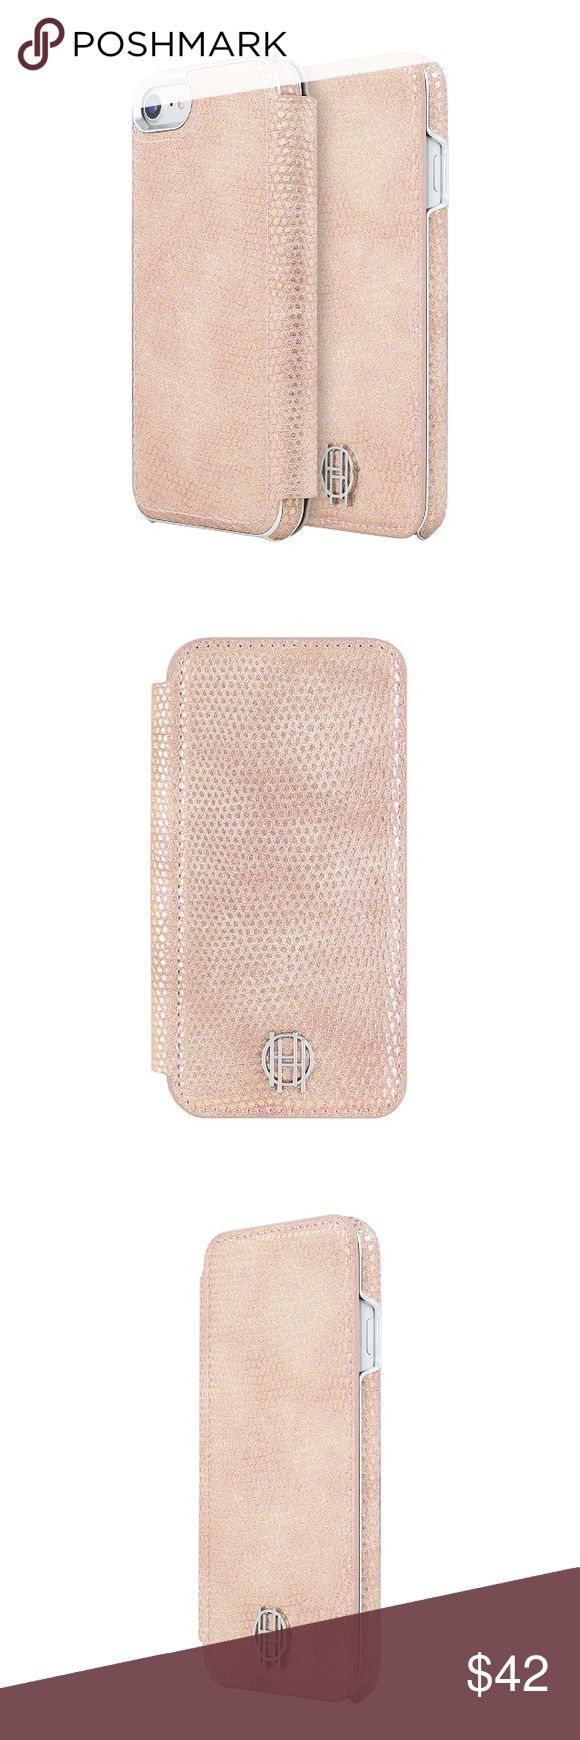 house of harlow // iPhone 7/8 folio case NWT House of Harlow 1960 pale pink/salmon and silver leather folio case. Gold metallic accent. Stylish raised silver metal logo at back. Soft microsuede interior with 2 credit card/ID slots. House of Harlow 1960 Accessories Phone Cases